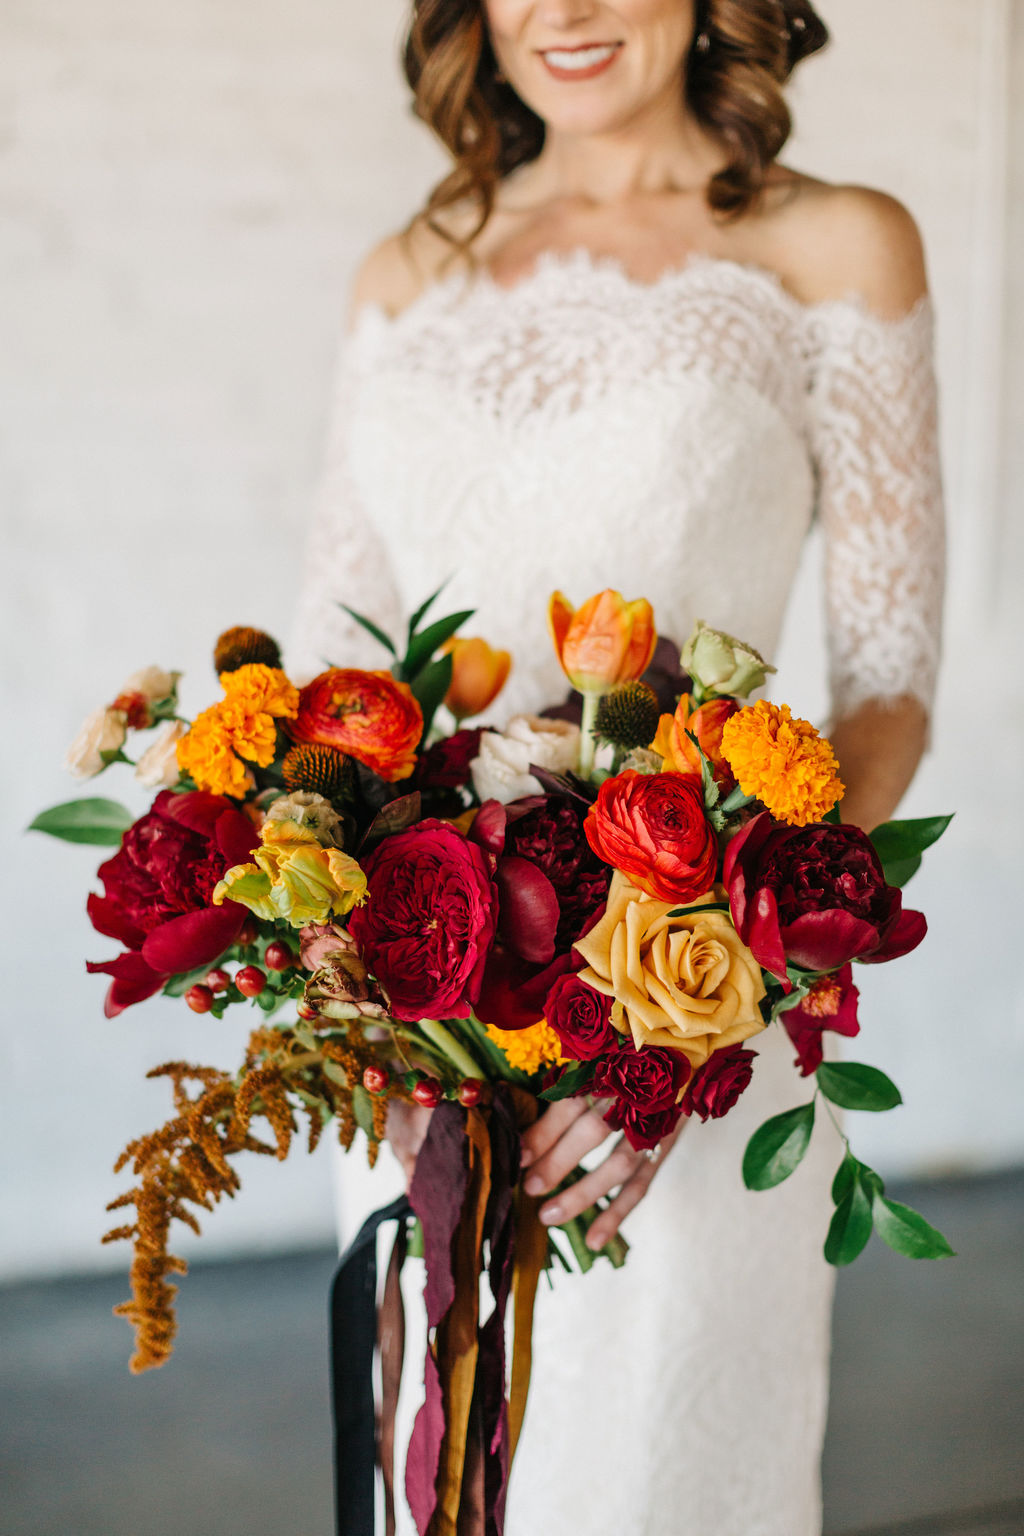 wedding bouquet with striking blooms